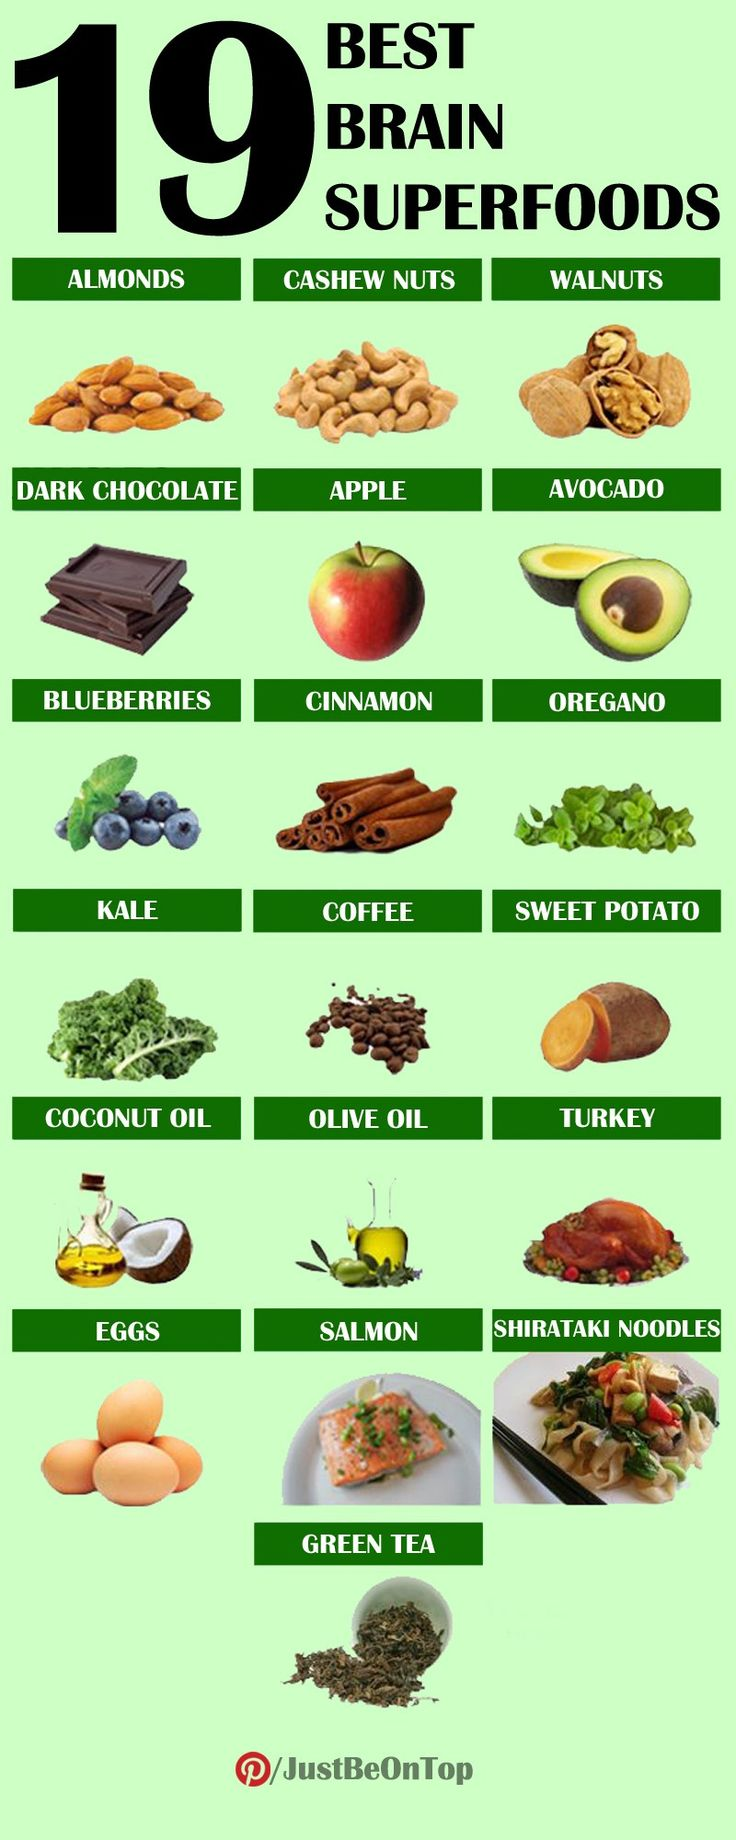 The brain is the most sensitive and essential organ in our body that requires exceptional care and treatments. It needs a lot of calories to work properly and also needs the quality sources of nutrients and calories.